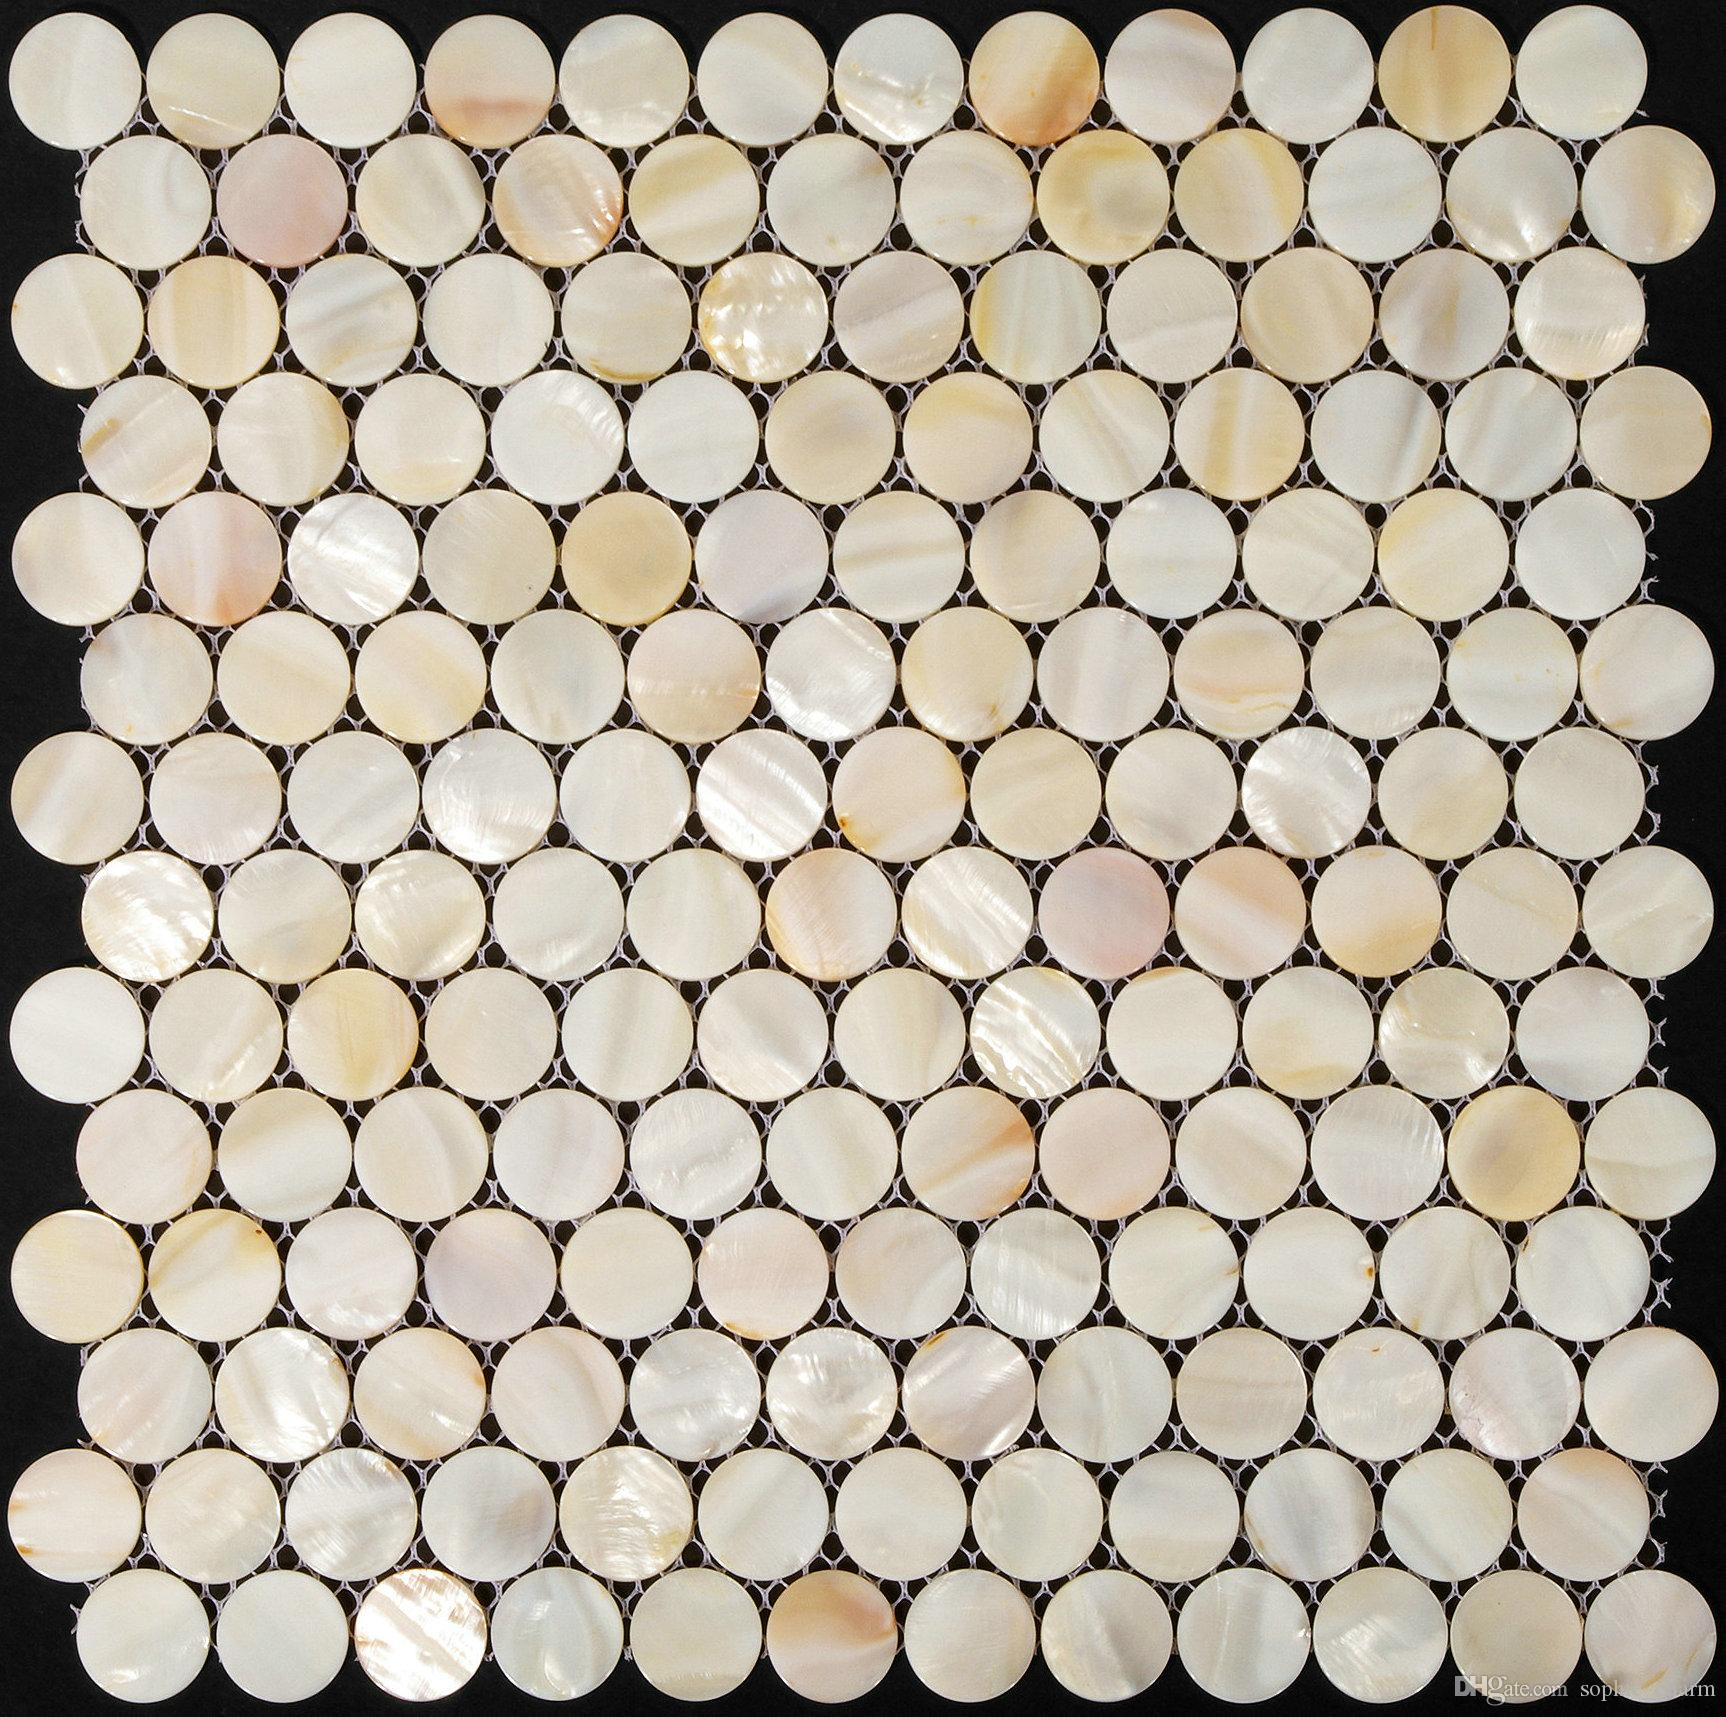 Penny round Mother of pearl mosaic kitchen backsplash sea shell tiles MOP018 shell mosaic bathroom tiles